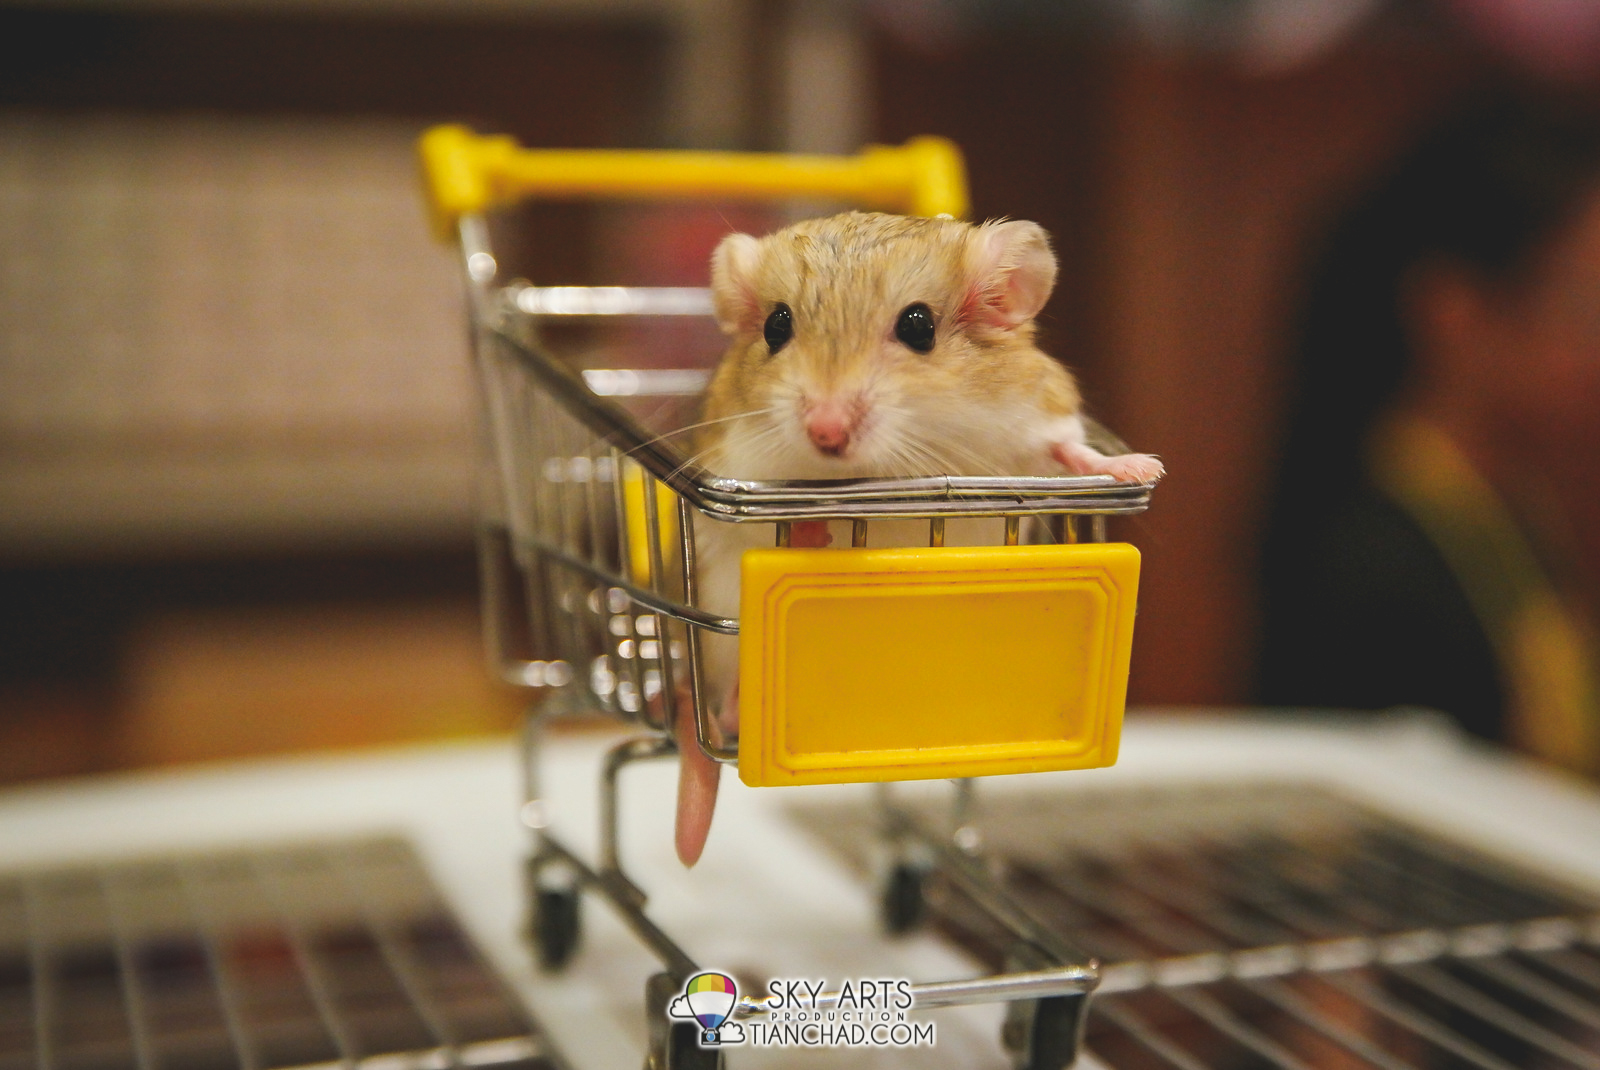 Cute mouse with long tail in a trolly